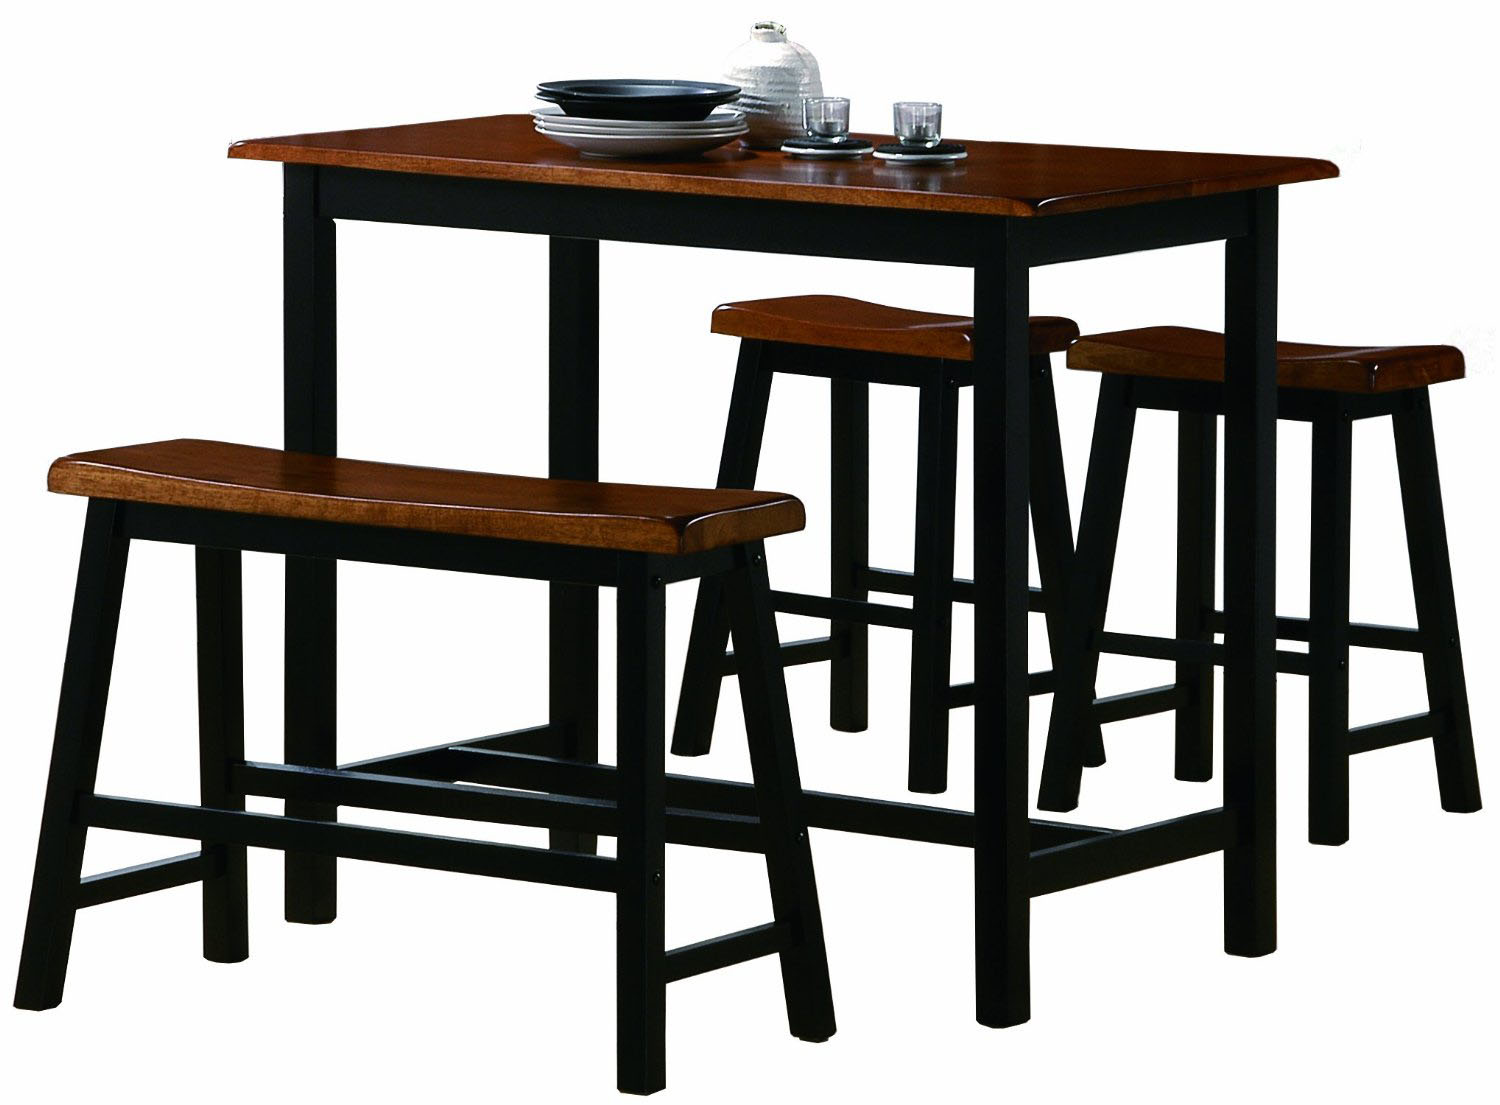 tall kitchen table sets - Tall Kitchen Table Chairs